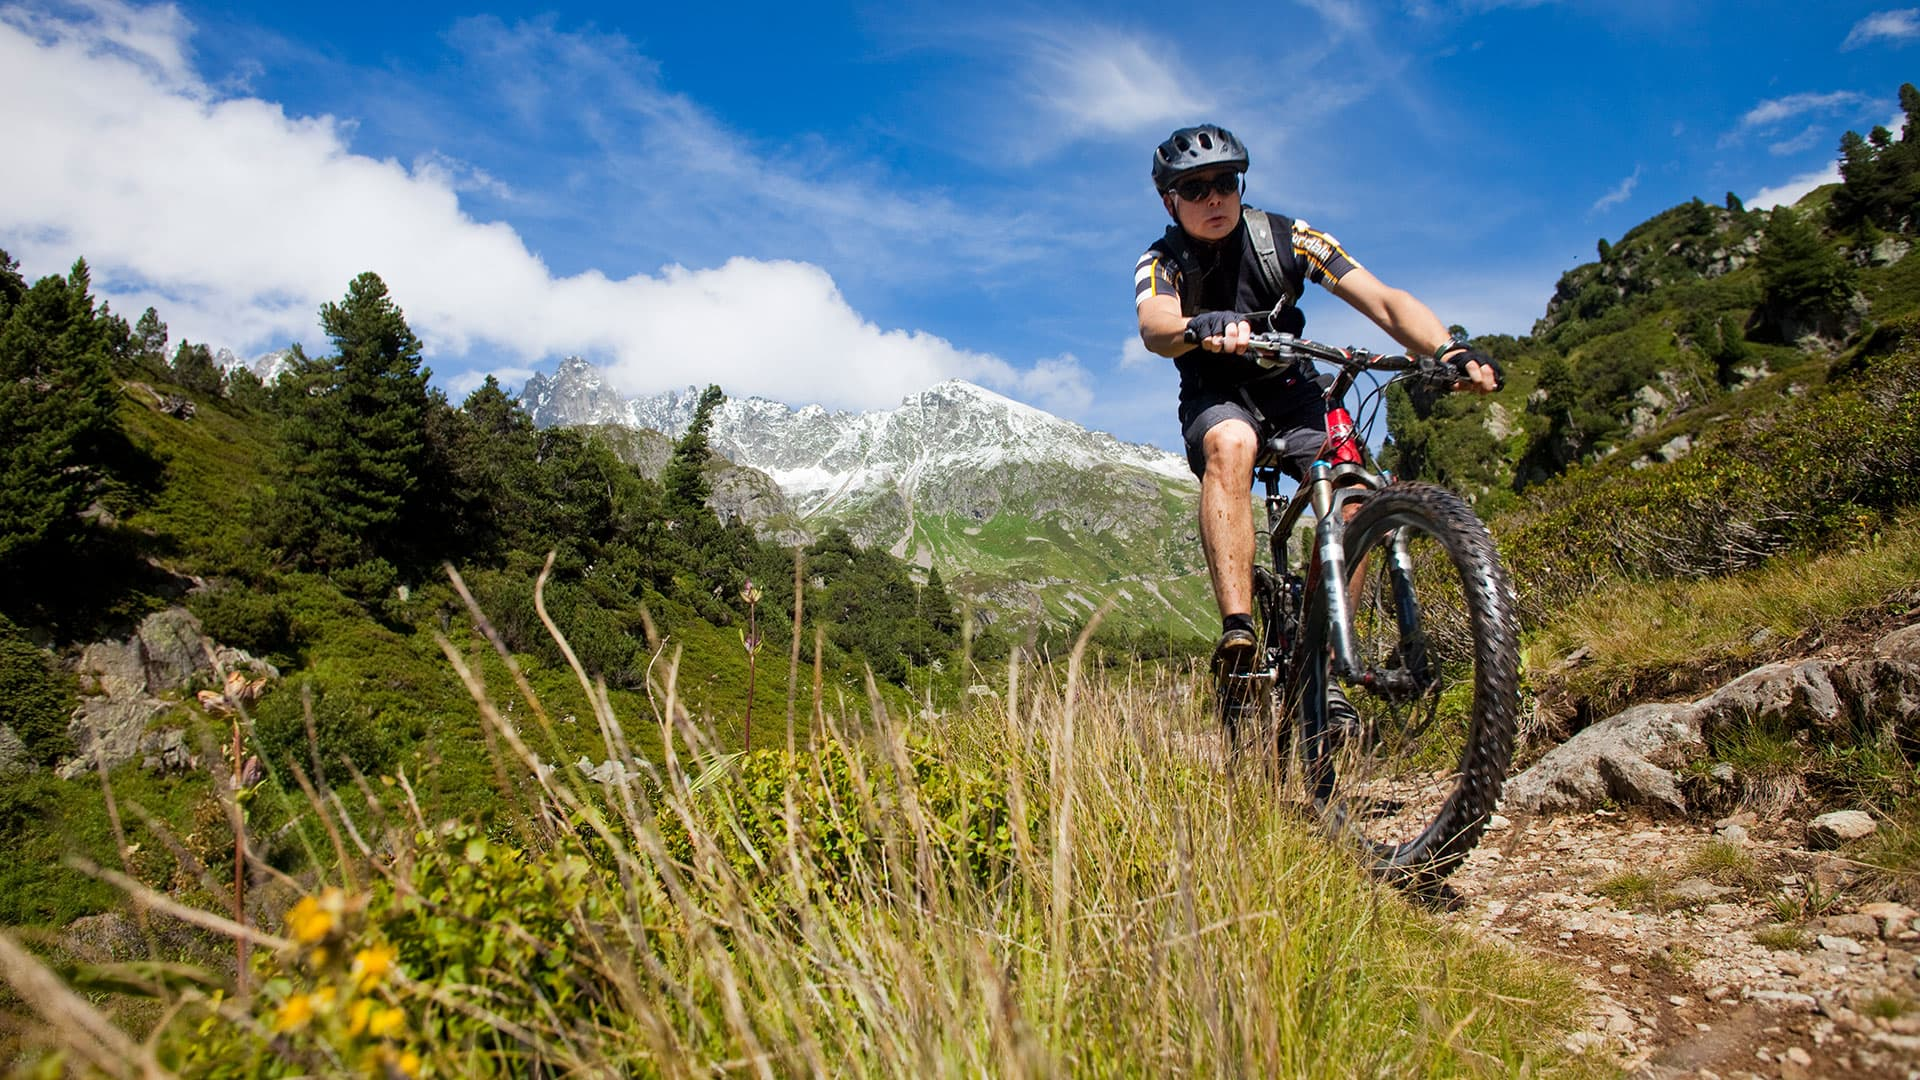 Mountainbike-Spass am Sustenpass!